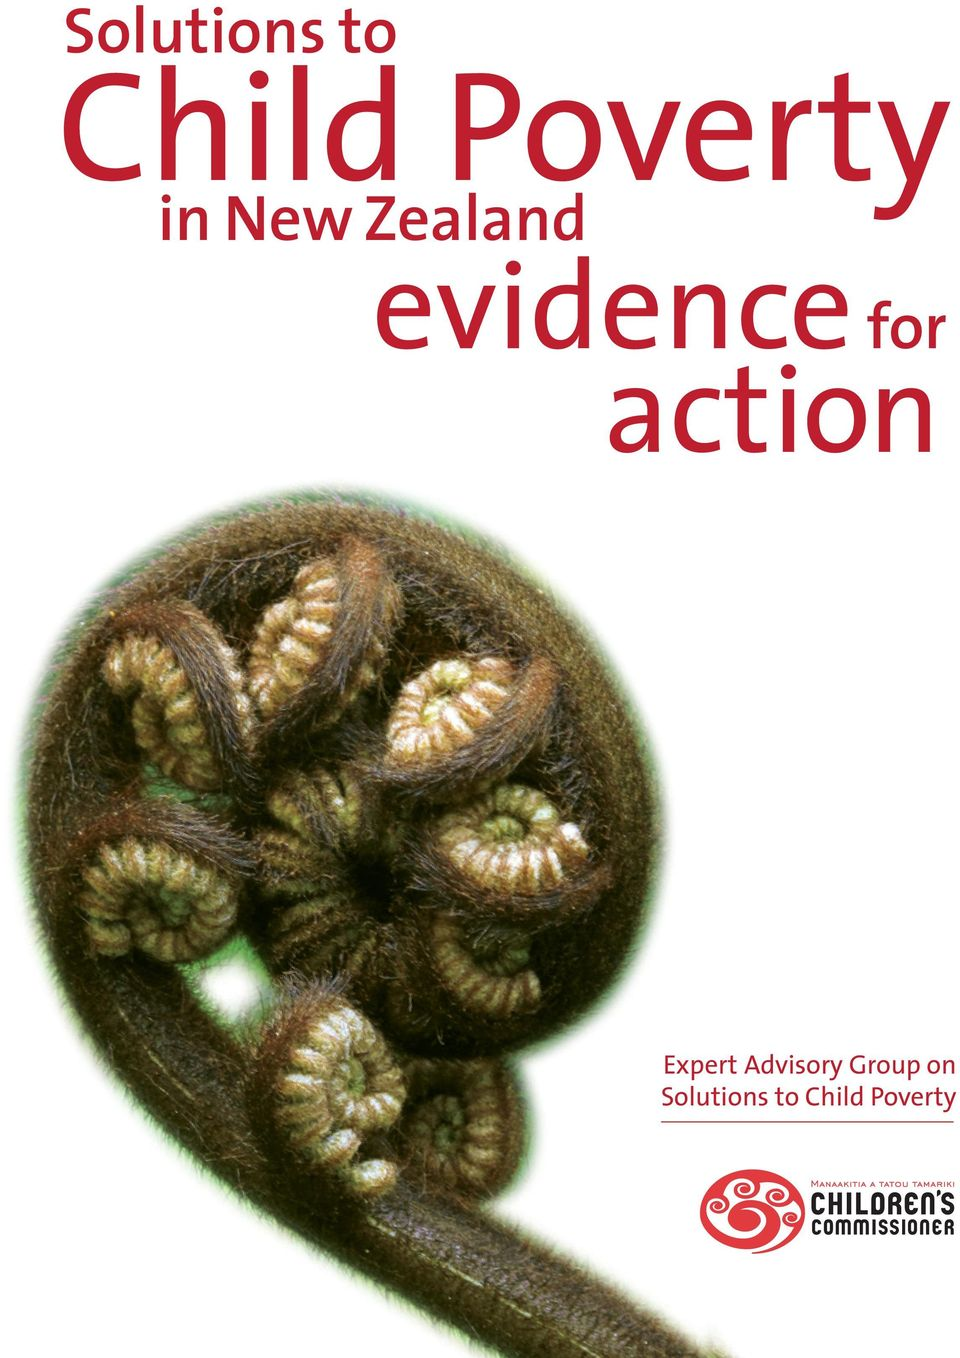 action Expert Advisory Group